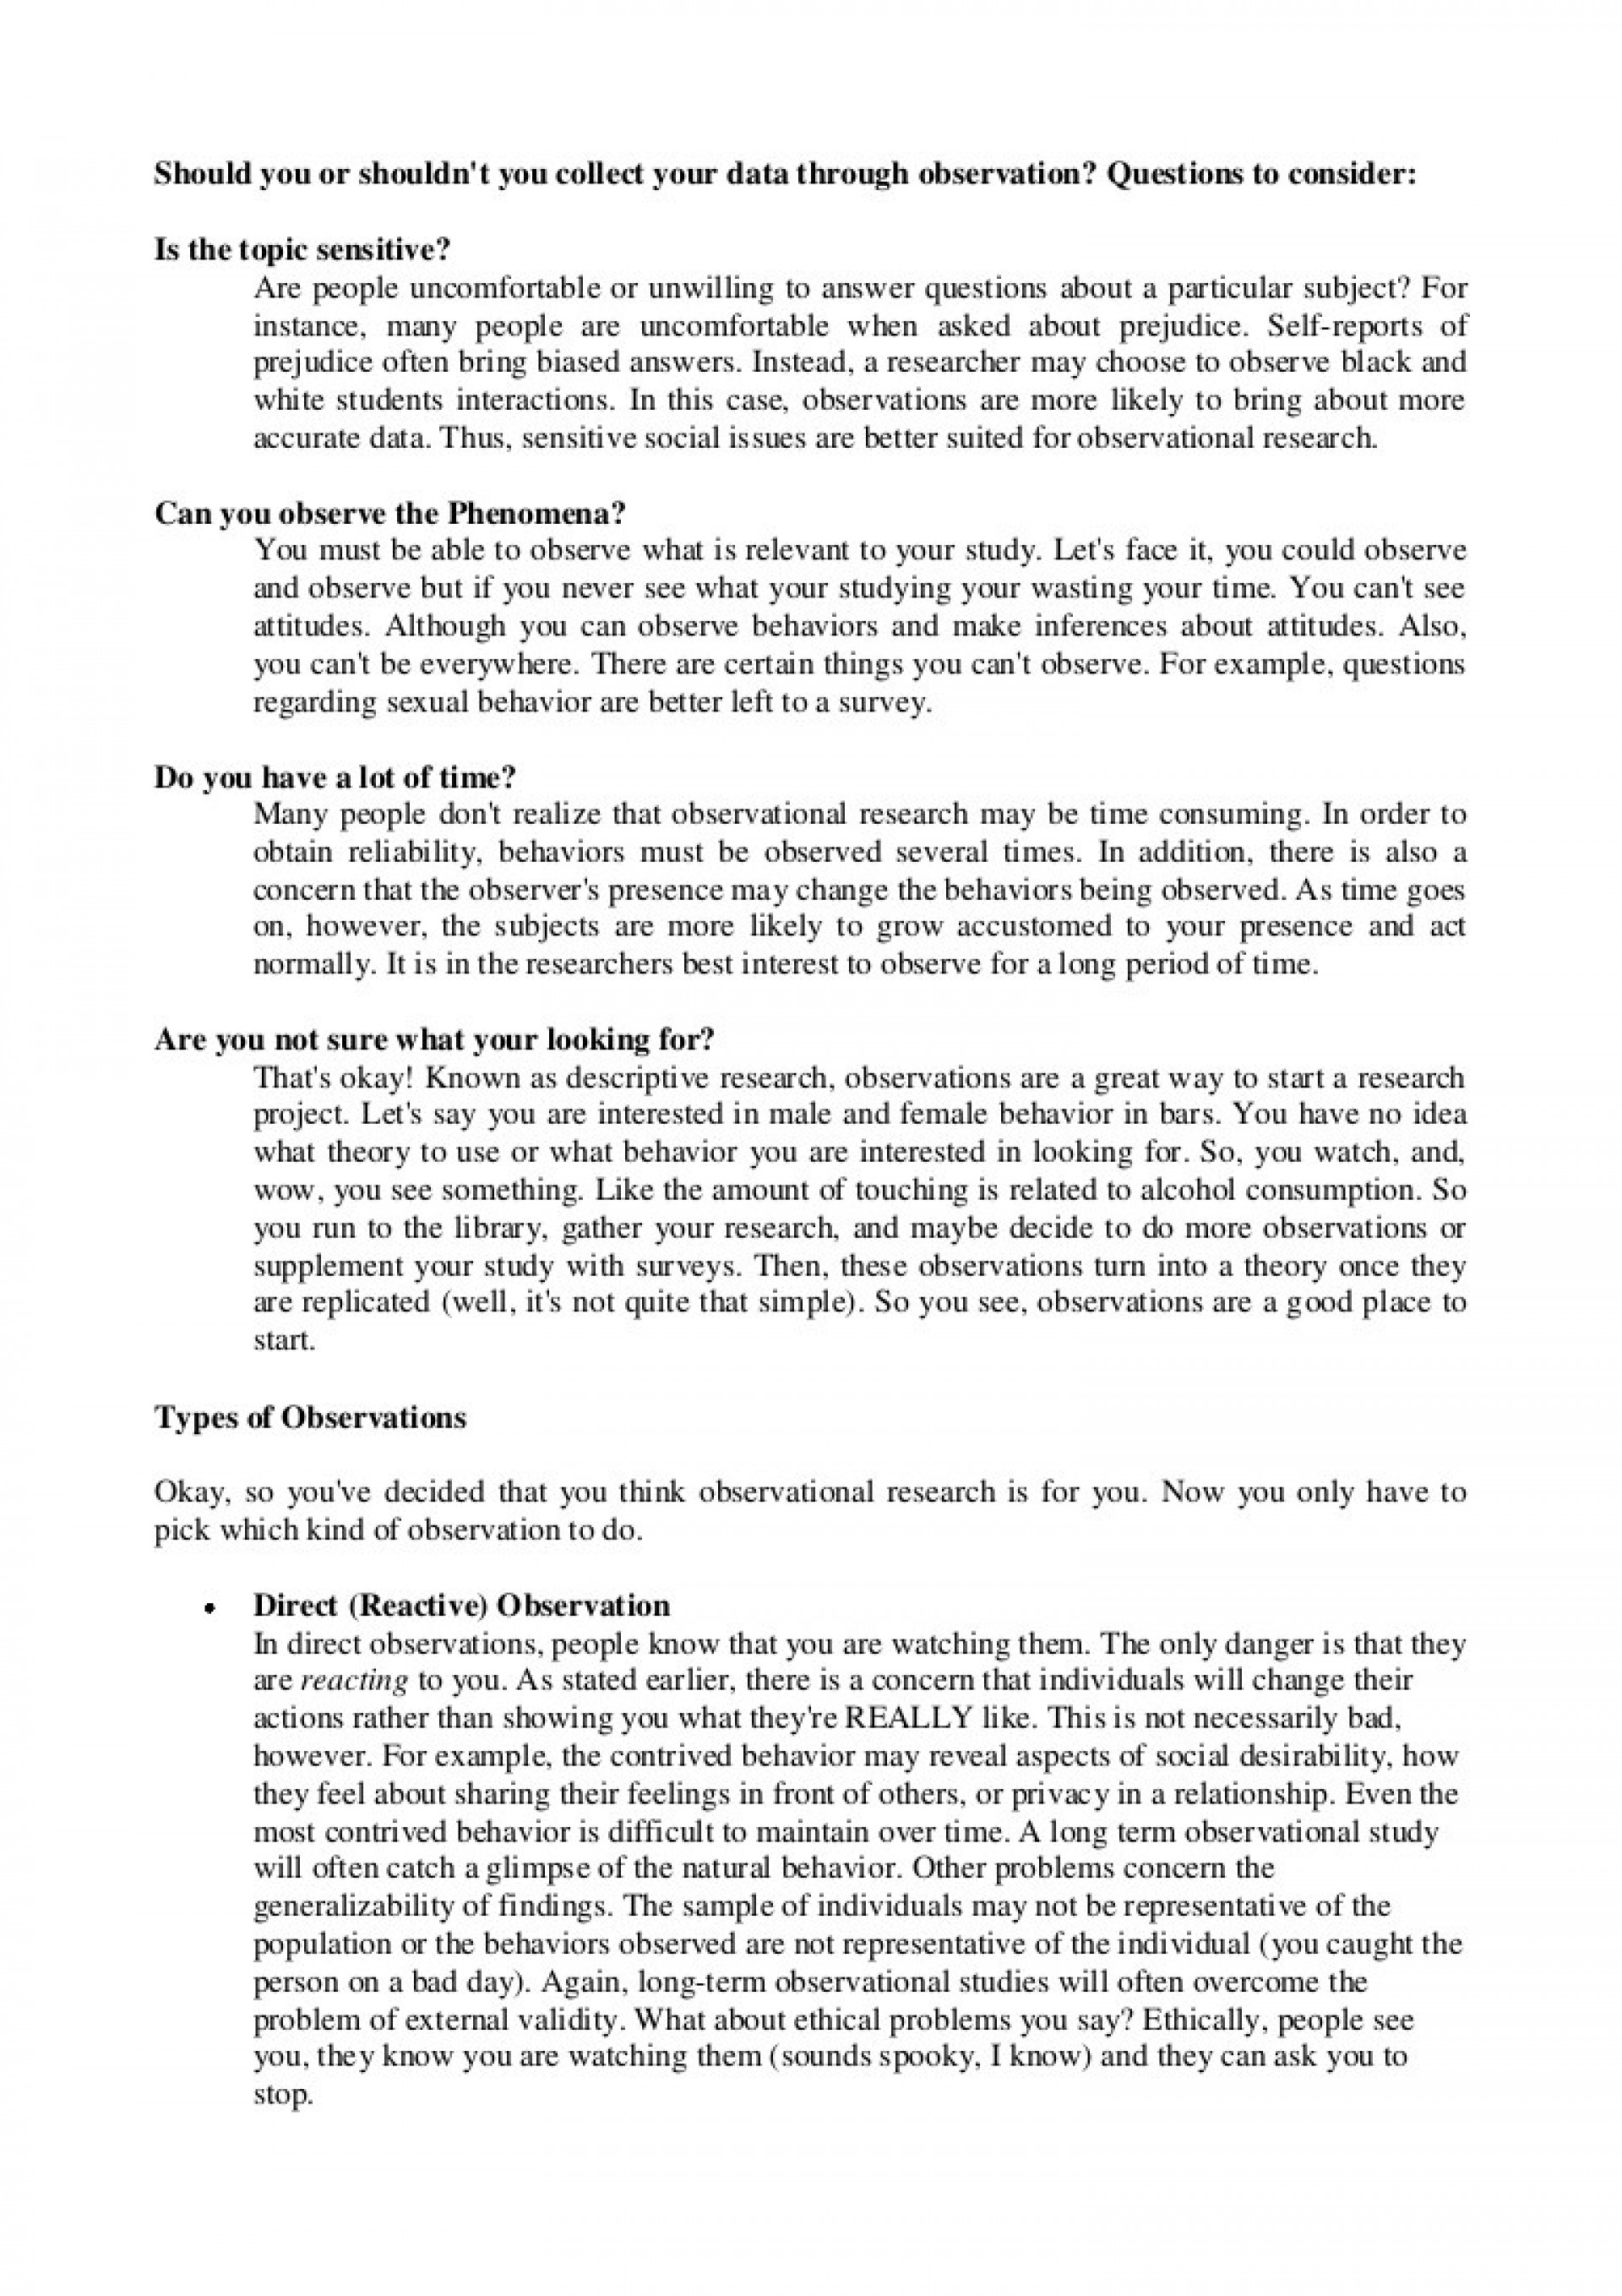 019 Observationinterview Phpapp Thumbnail Nice How To Write An Interview Essay Excellent Example Paper In Apa Format Introduction 1920